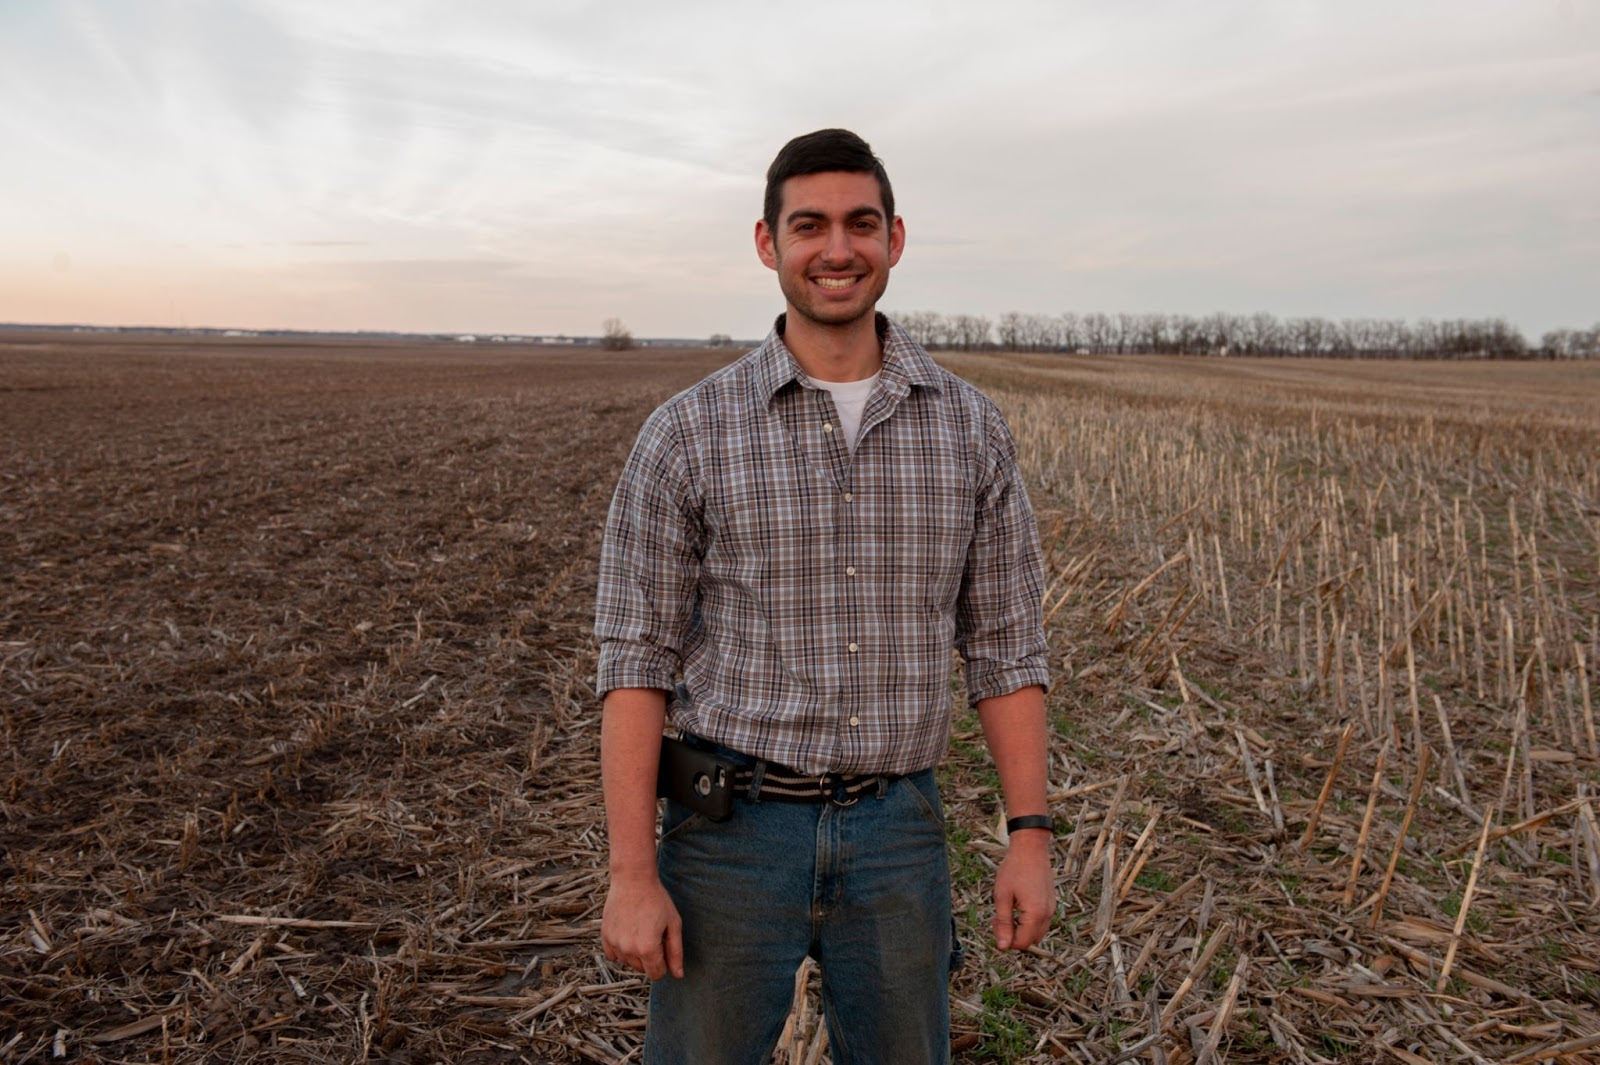 Image of Frank Rademacher standing and smiling on the dividing line between his field of cover crops and his neighbors bare soil.